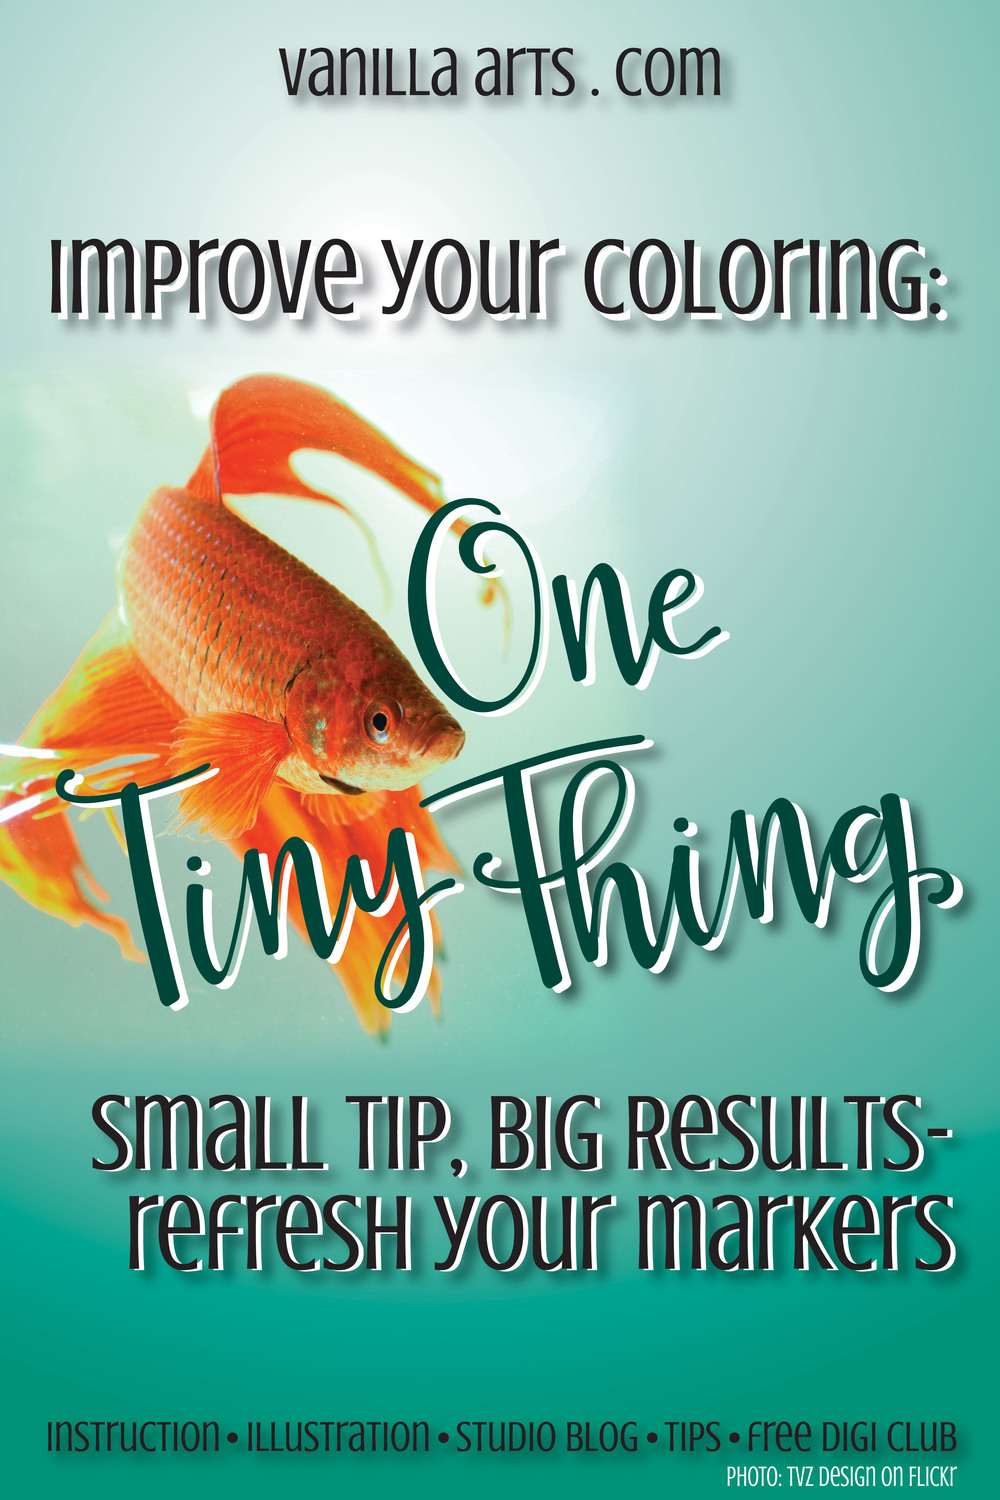 One Tiny Thing: You can improve your coloring today- refresh your markers | VanillaArts.com